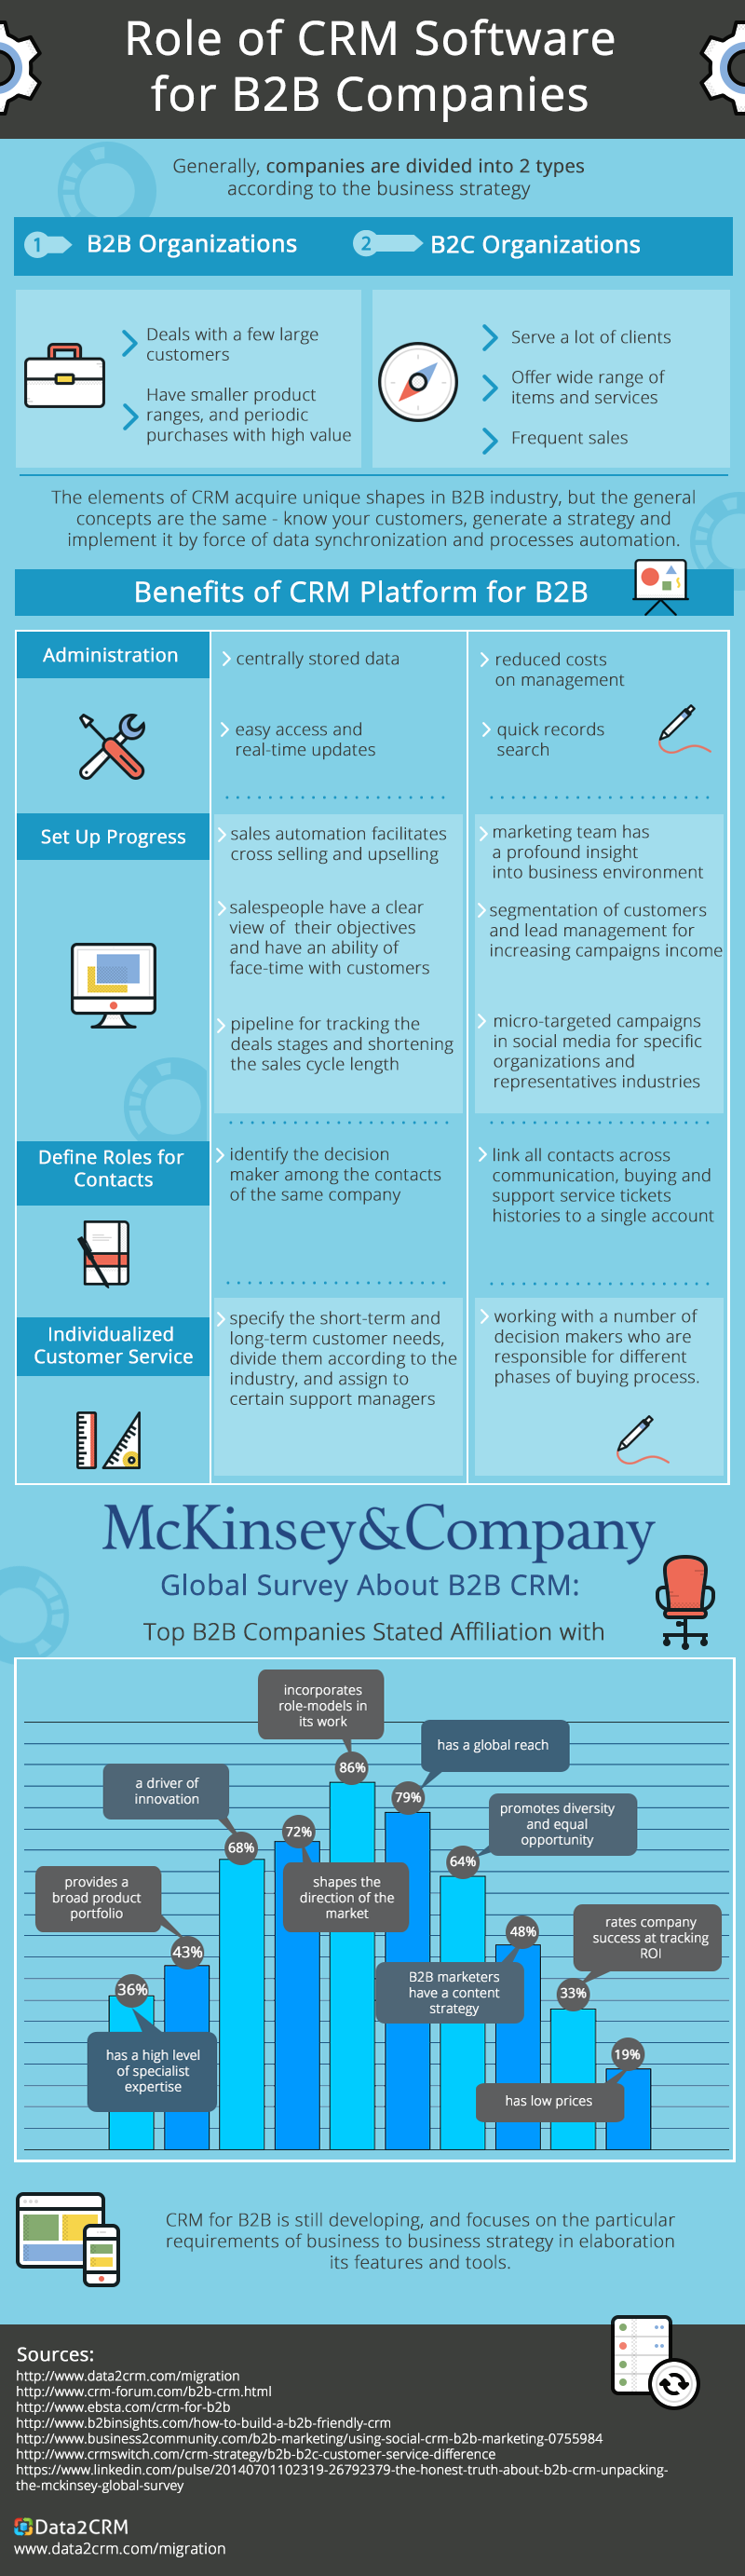 CRM-for-B2B